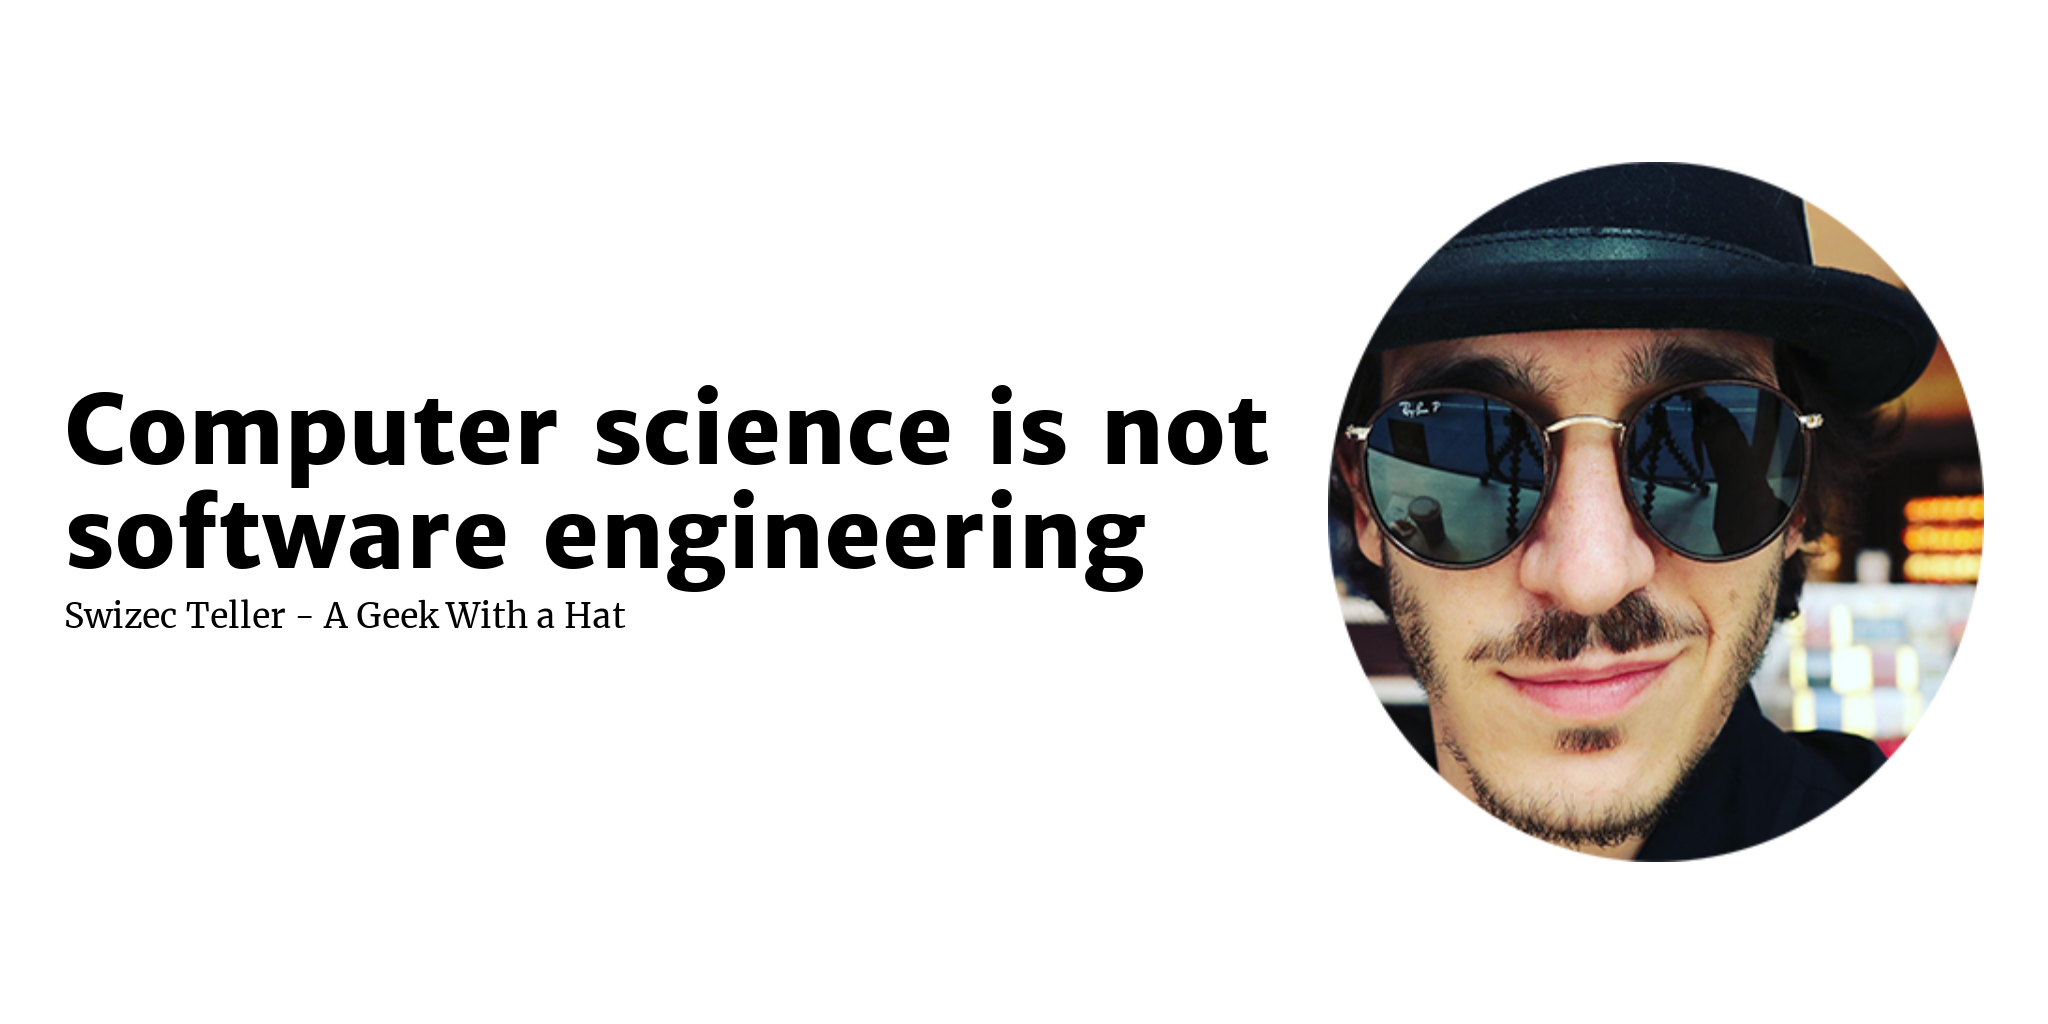 Computer science is not software engineering